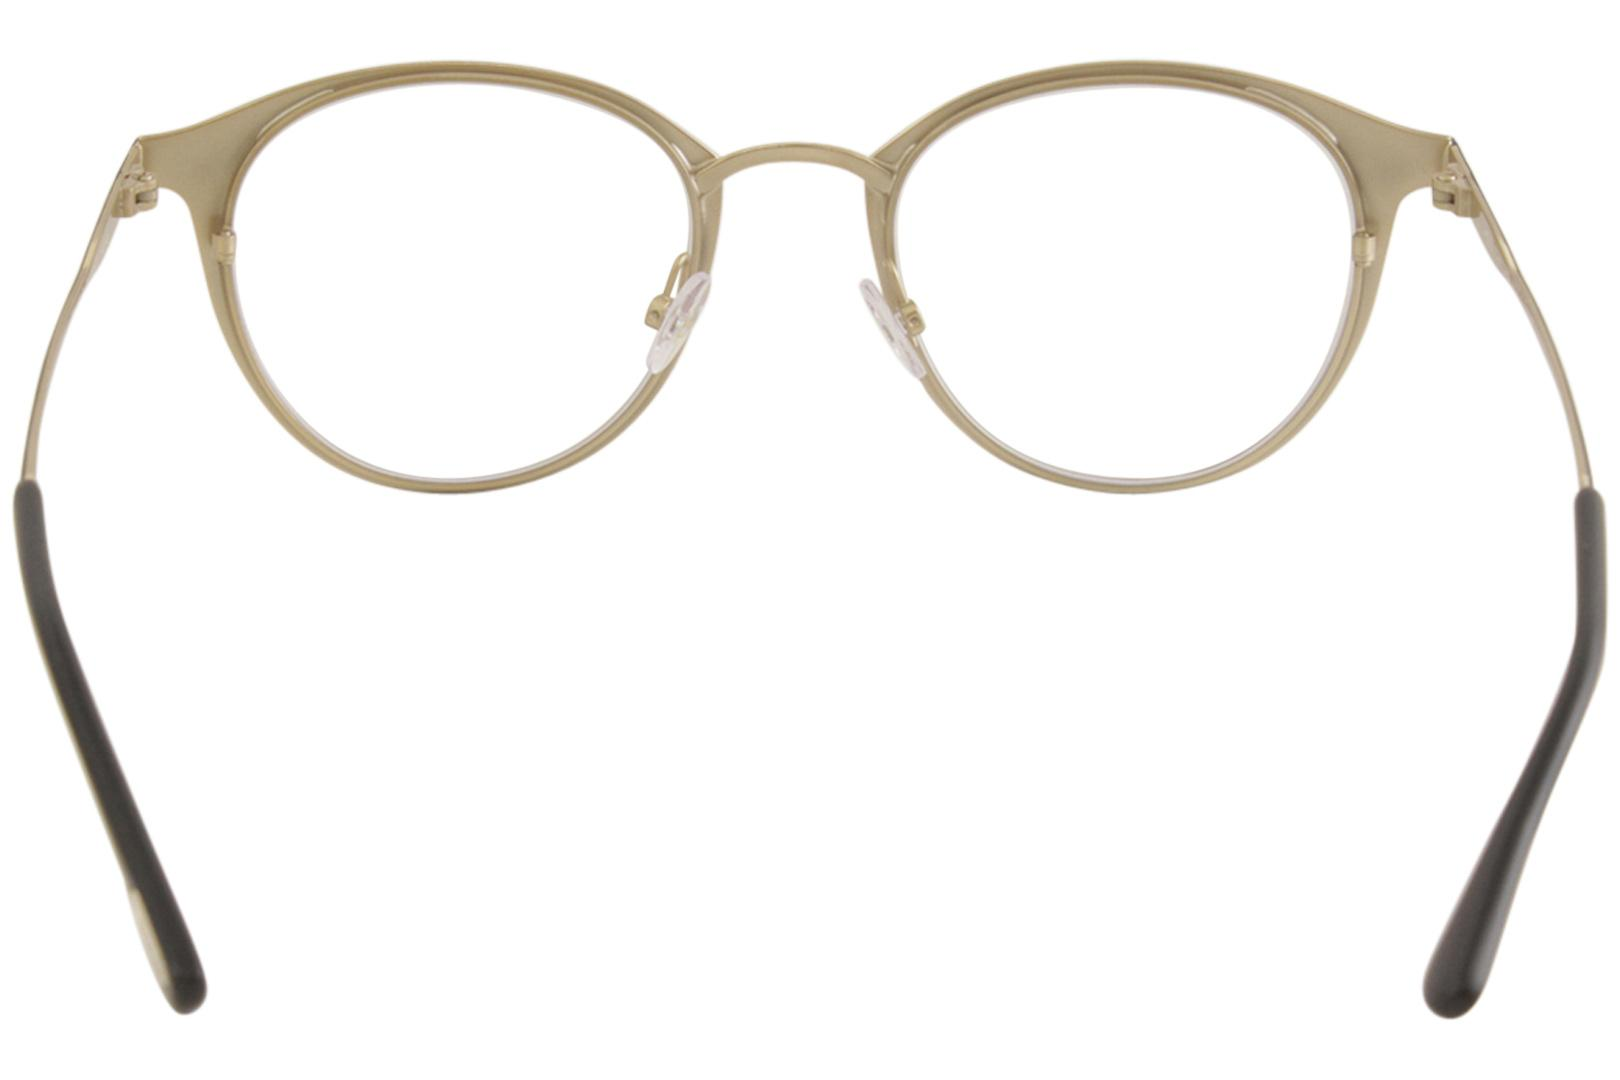 440d6aa7ddc ... Eyeglasses TF5528B TF 5528 B Full Rim Optical Frame by Tom Ford. 12345